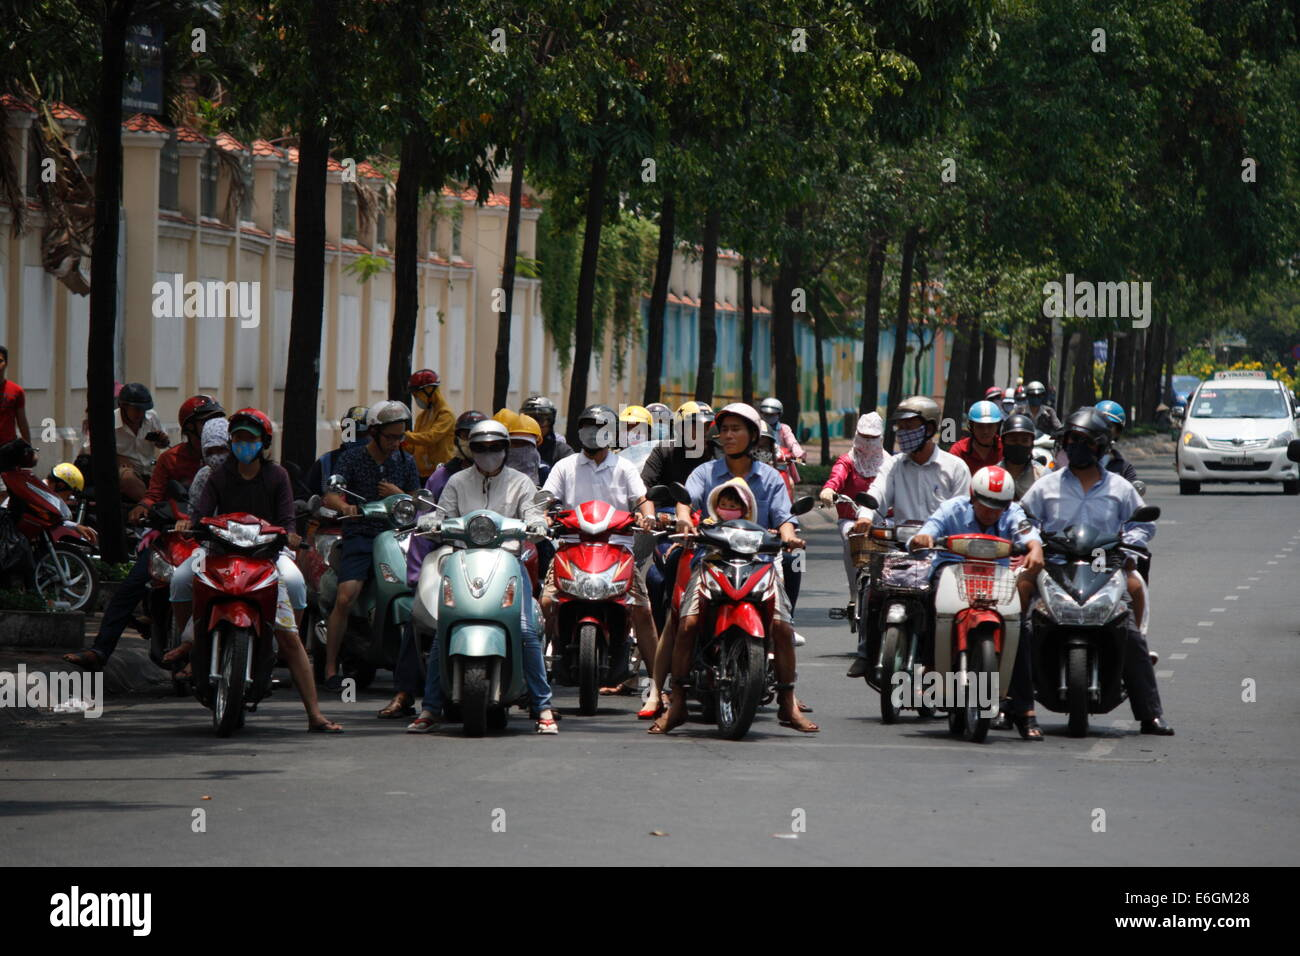 motorists stopping at traffic junction in Ho Chi Minh city, Vietnam - Stock Image